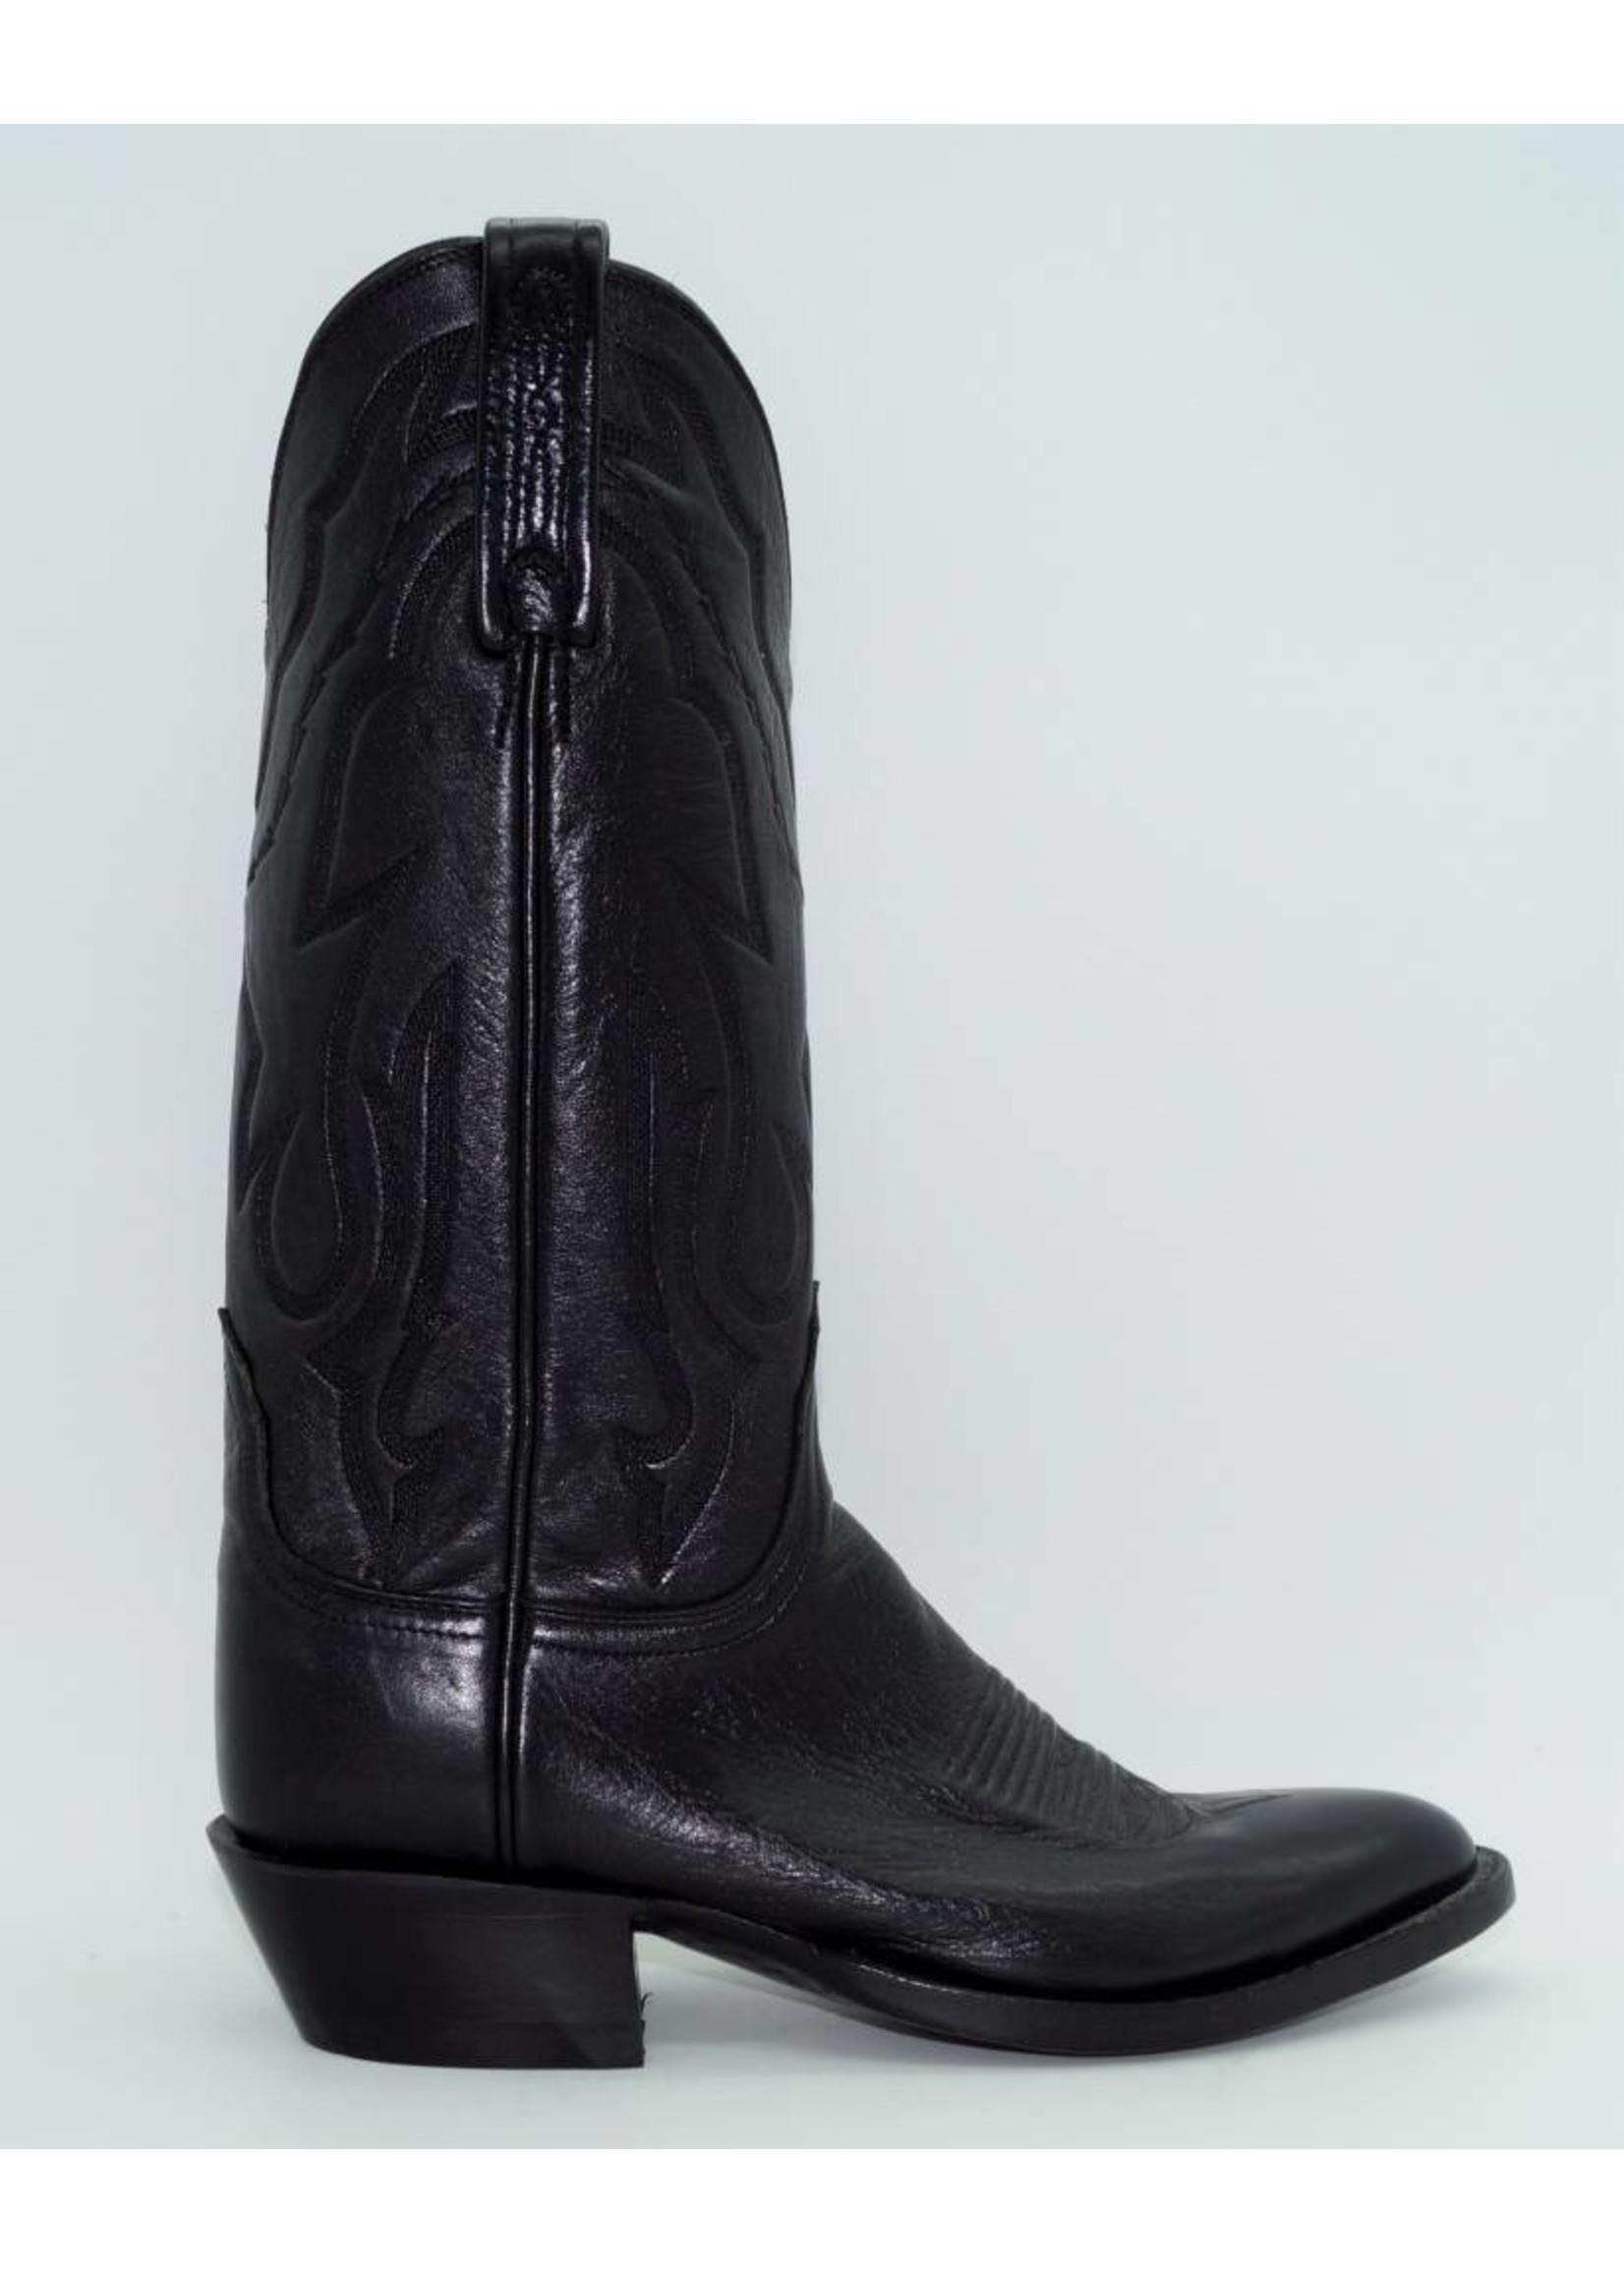 Lucchese Jeremy Black Long Star Calf Leather Cowboy Boots T3094-J4